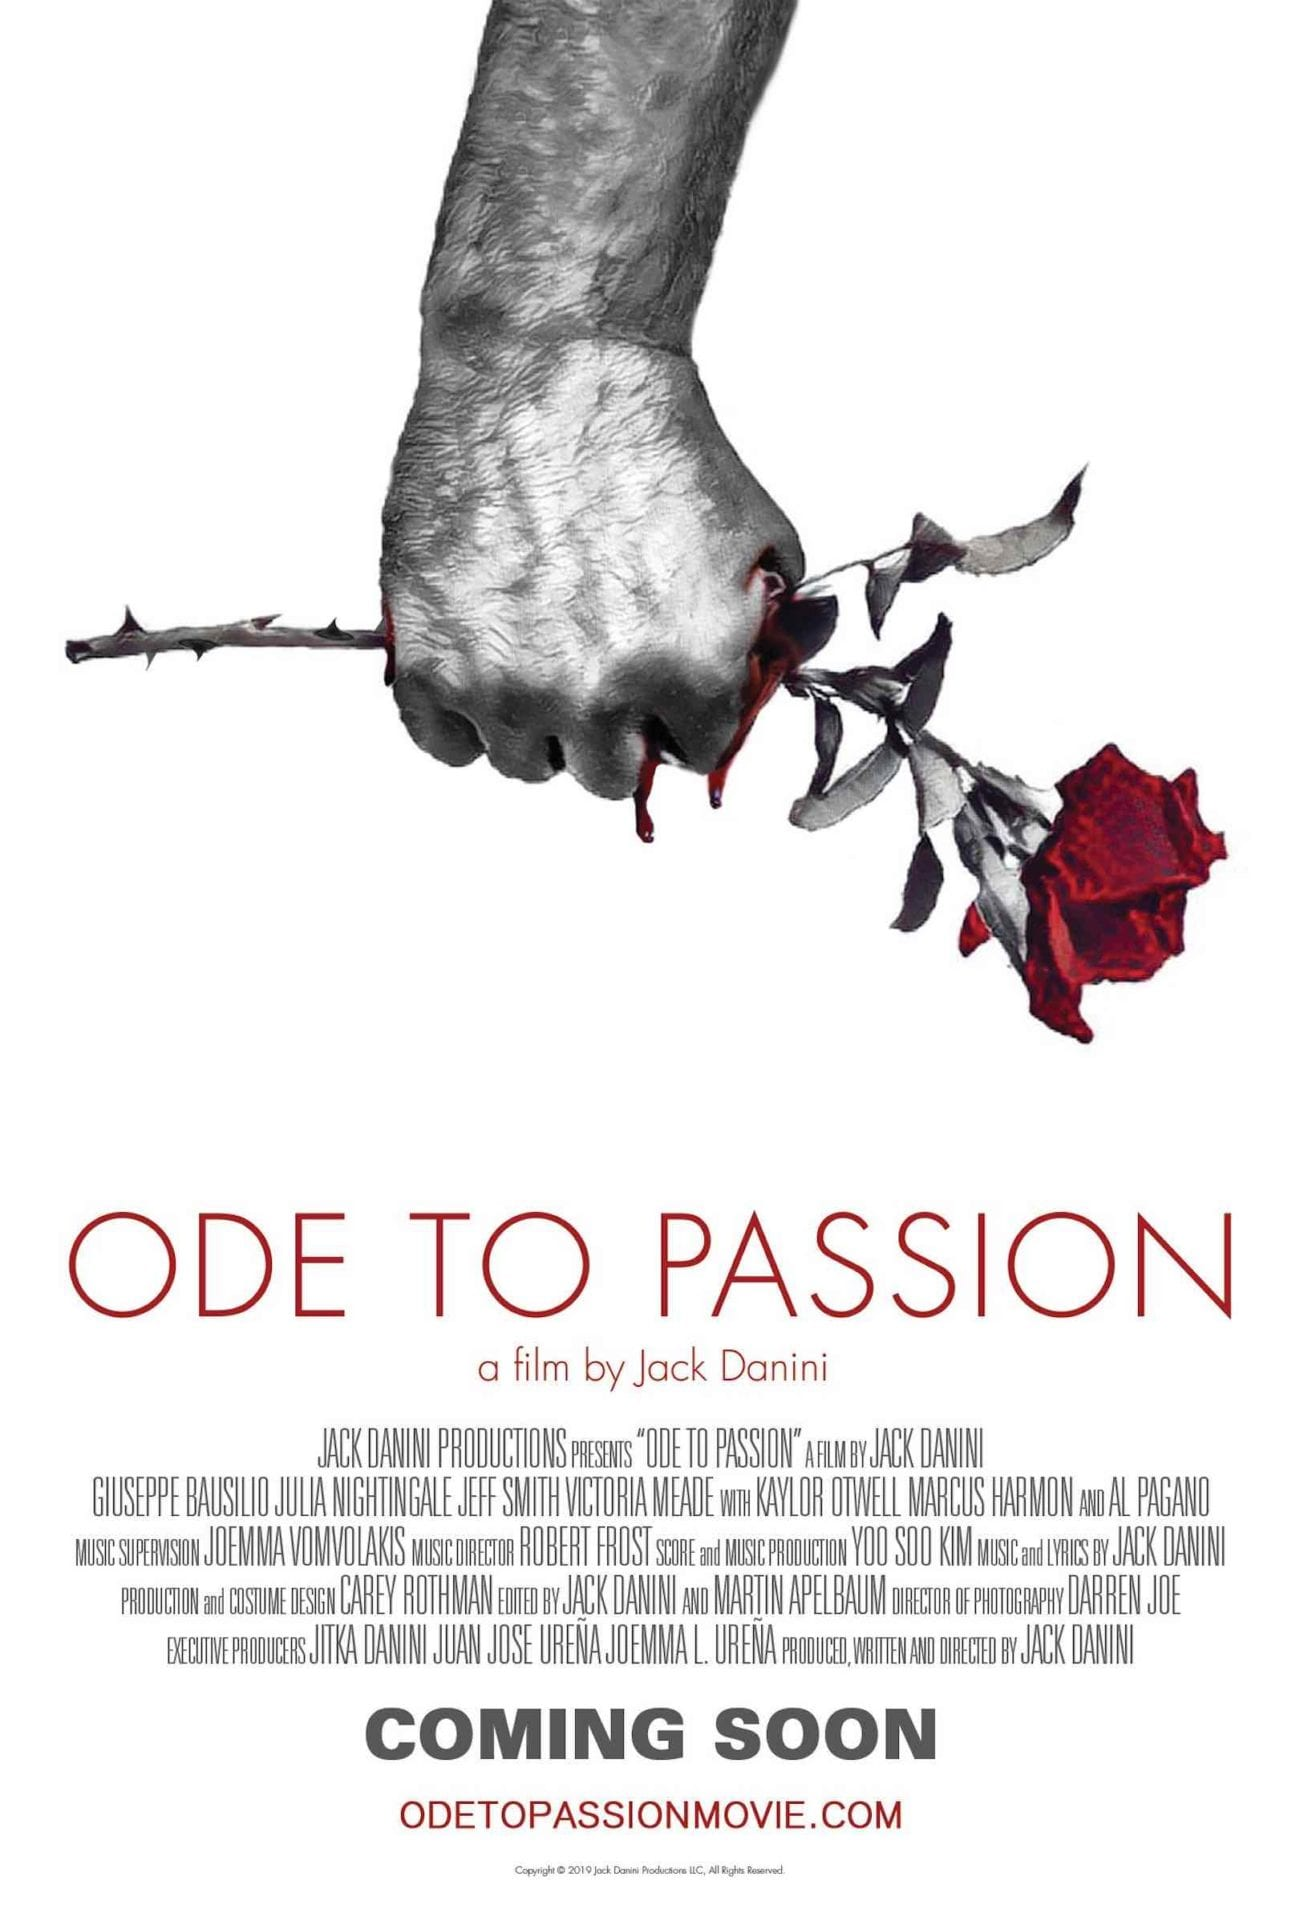 Filmmaker Jack Danini is releasing highly anticipated 'Ode to Passion'. We had the pleasure of chatting with Danini about his debut.